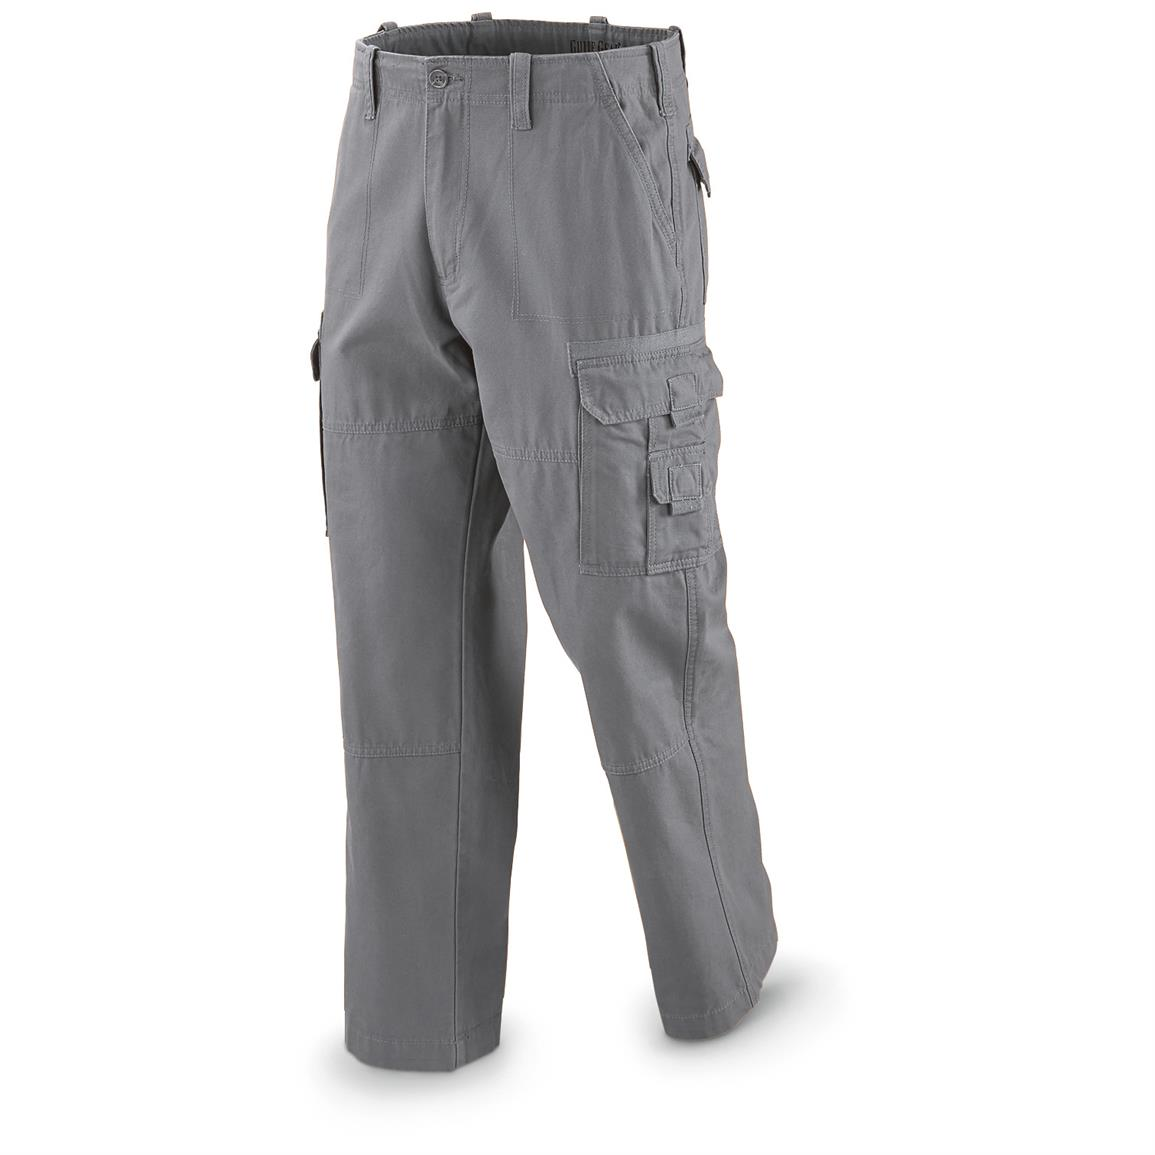 Guide Gear Men's Cargo Pants, Gray